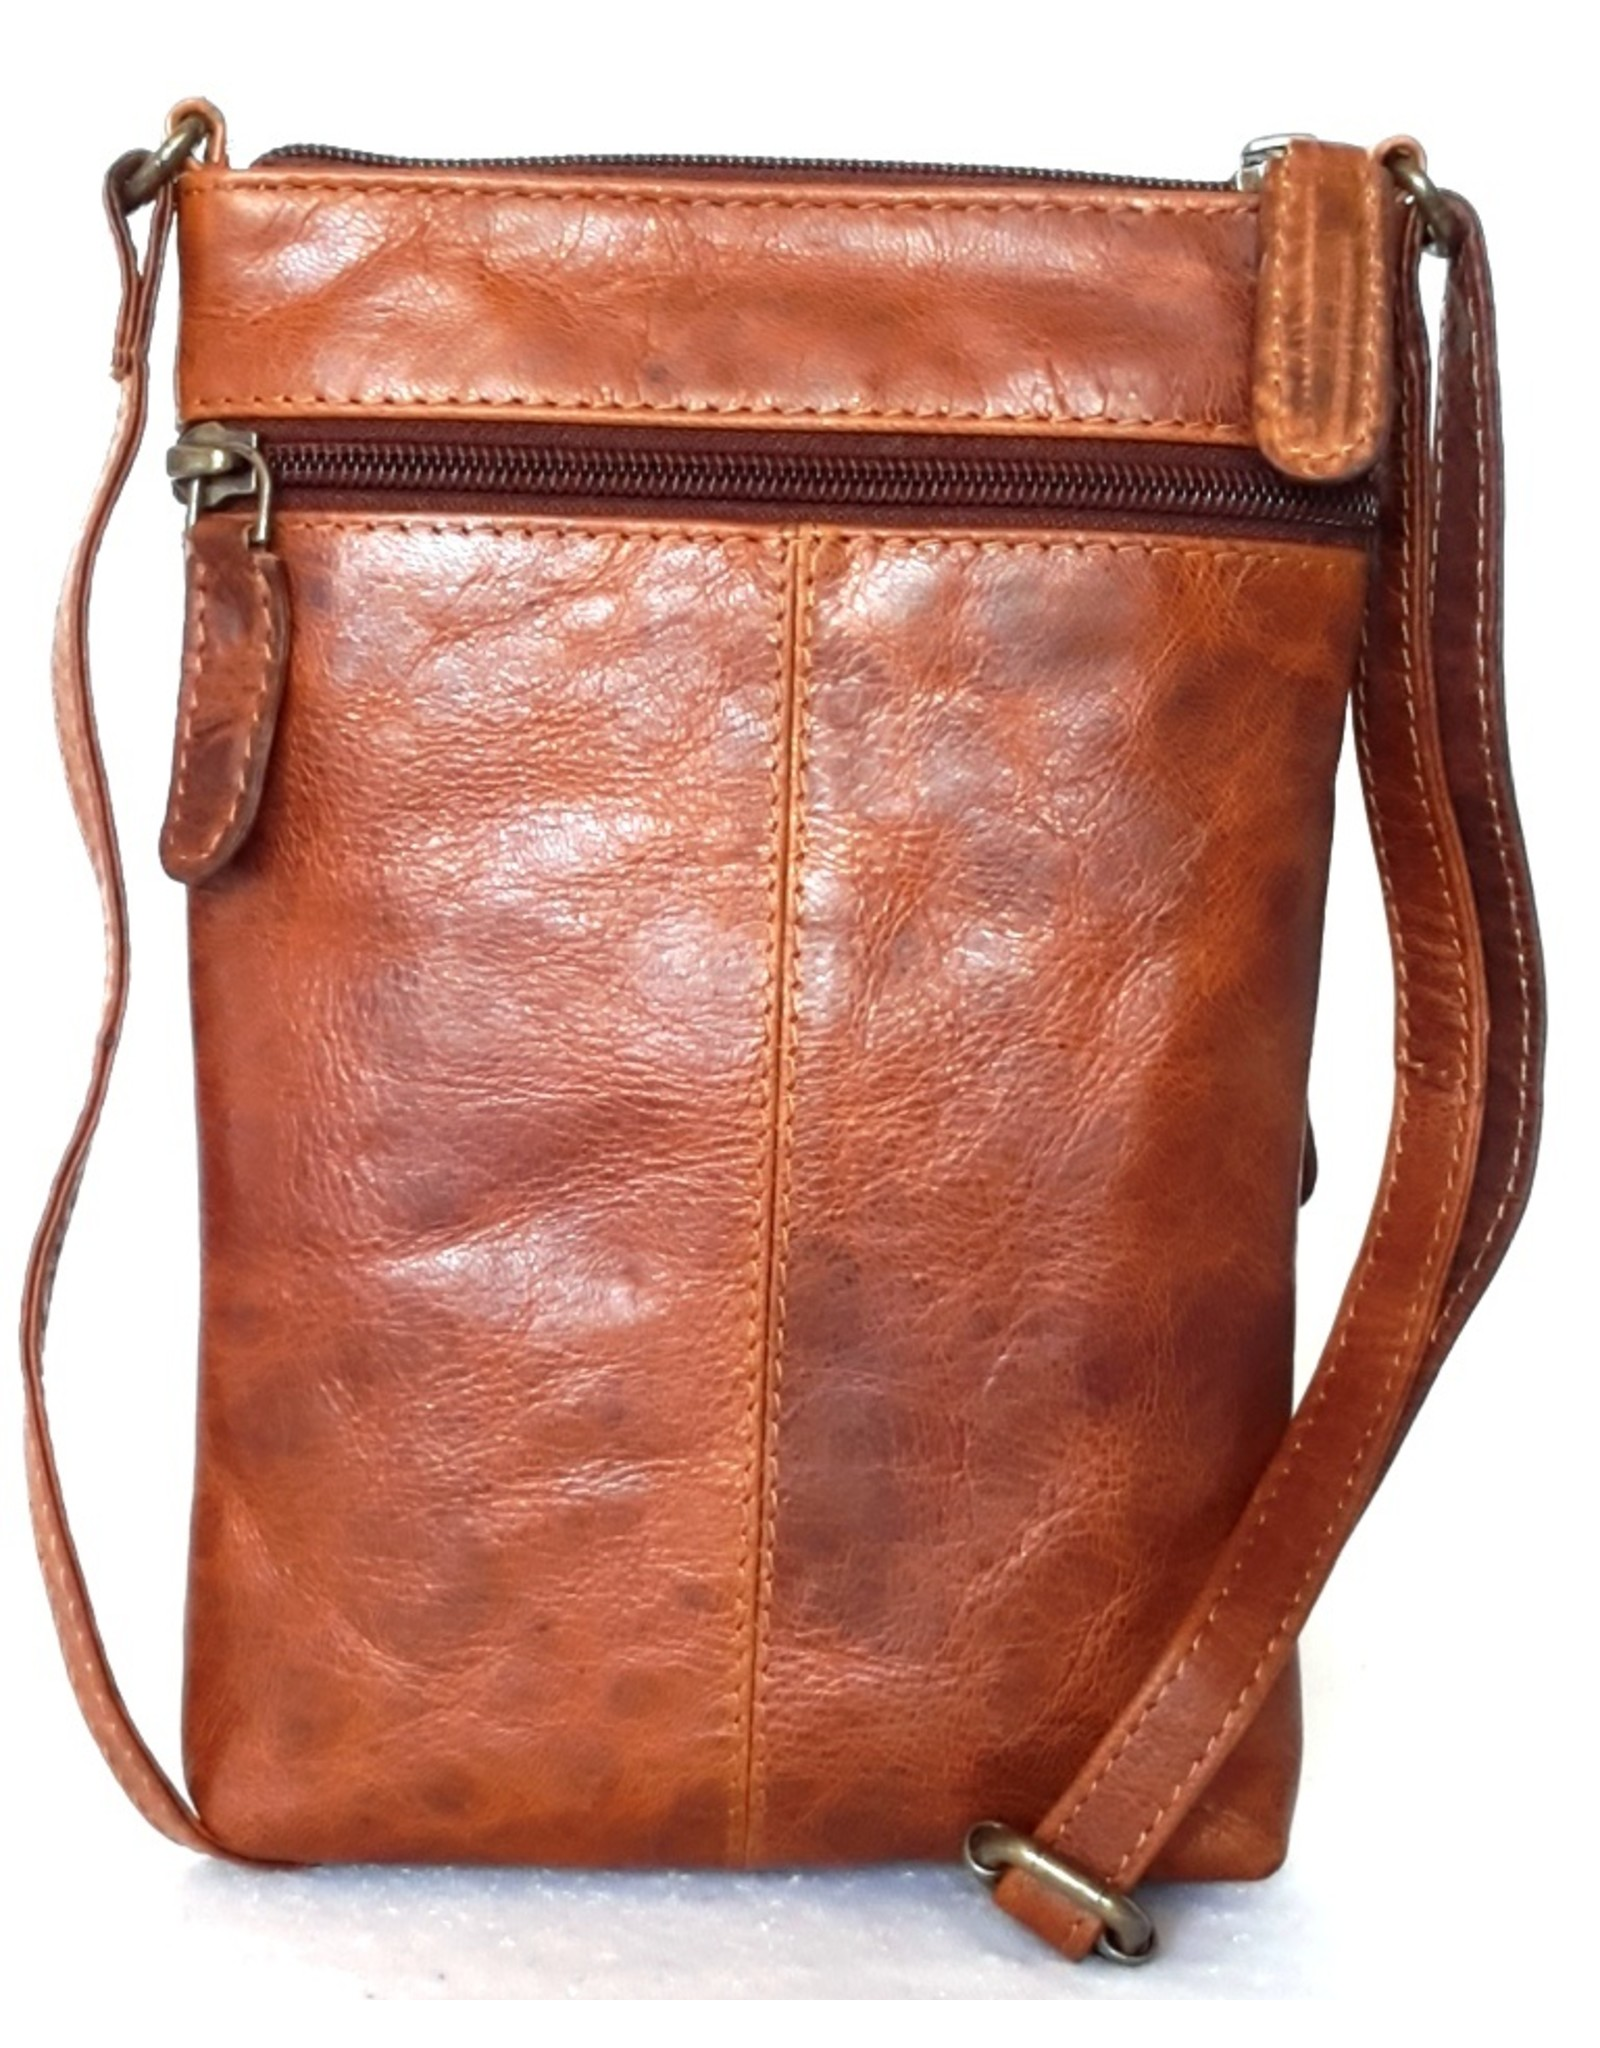 Napa Valley leren Schoudertassen Leren Crossbody tassen - Schoudertas Napa Valley (Waterbuffelleer)